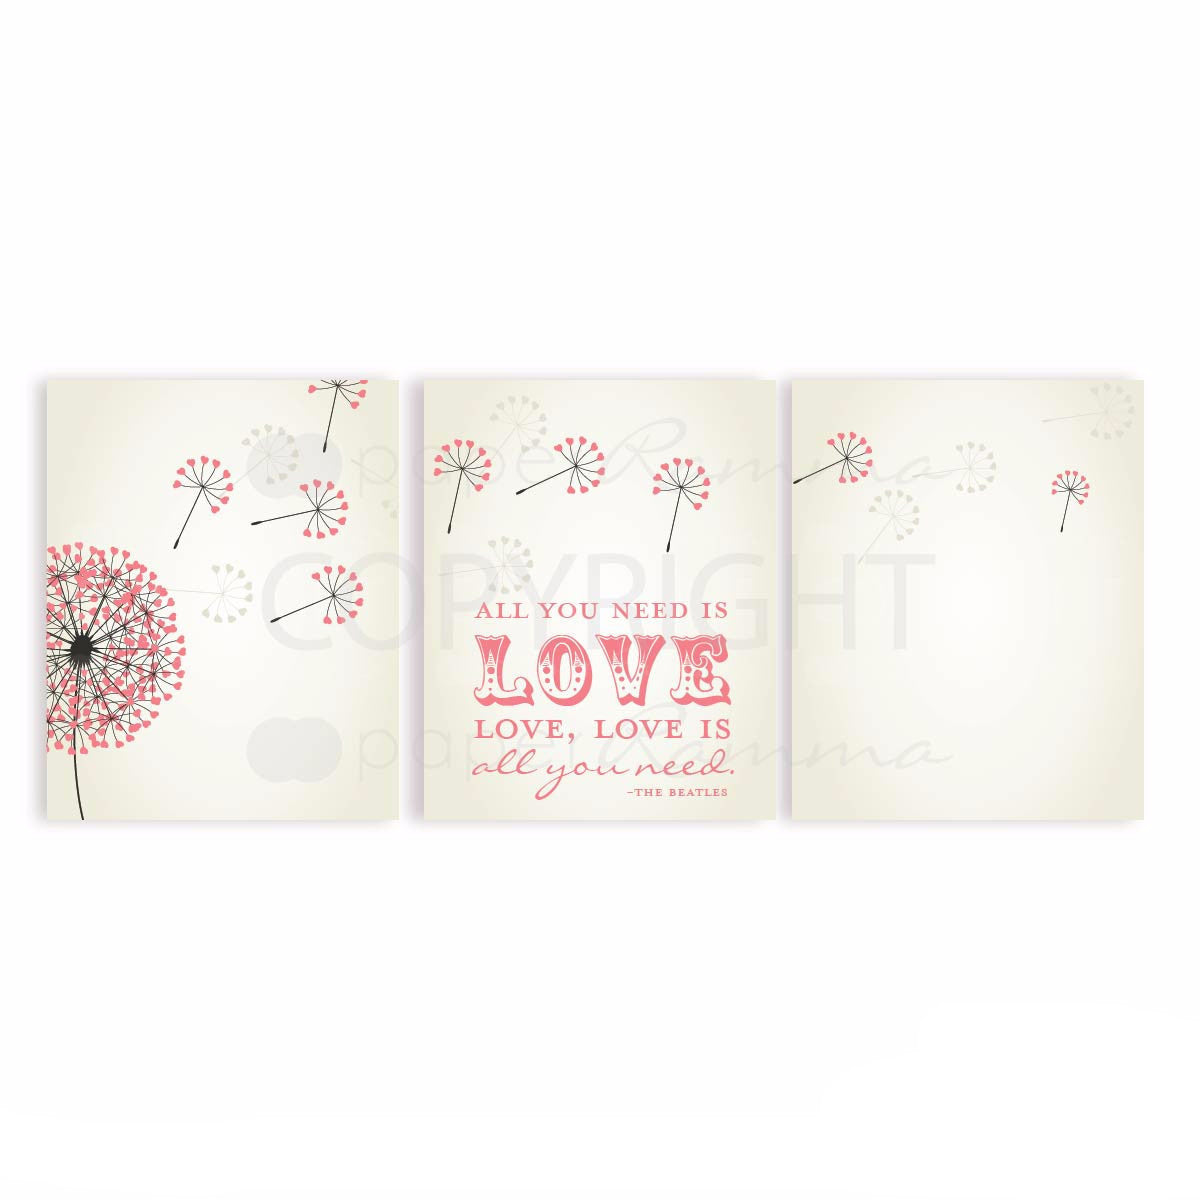 Beatles Nursery Lyrics, All you need is Love Lyric Art, Nursery & Kids Art Print